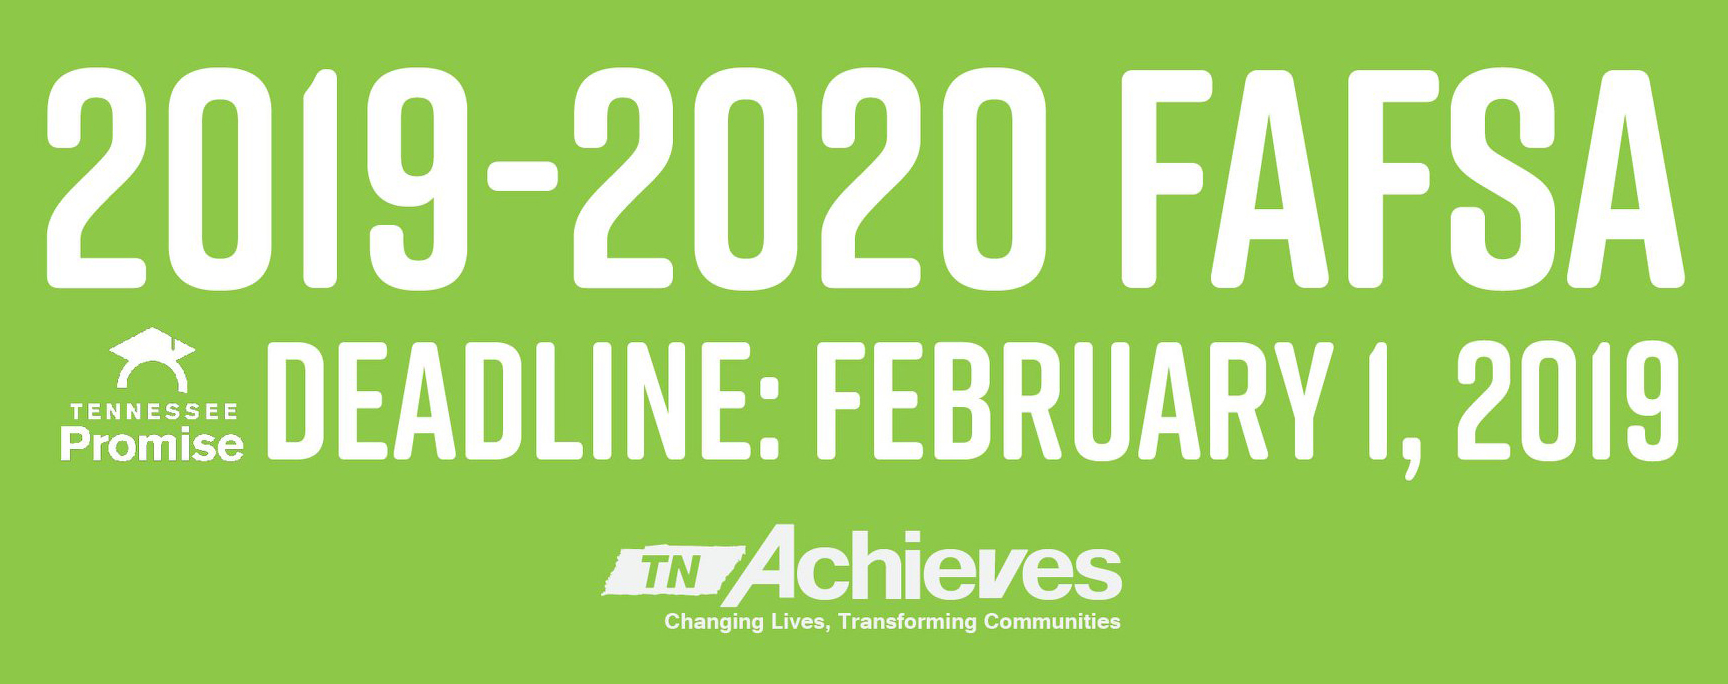 The deadline for the 2019-2020 FAFSA is February 1st.